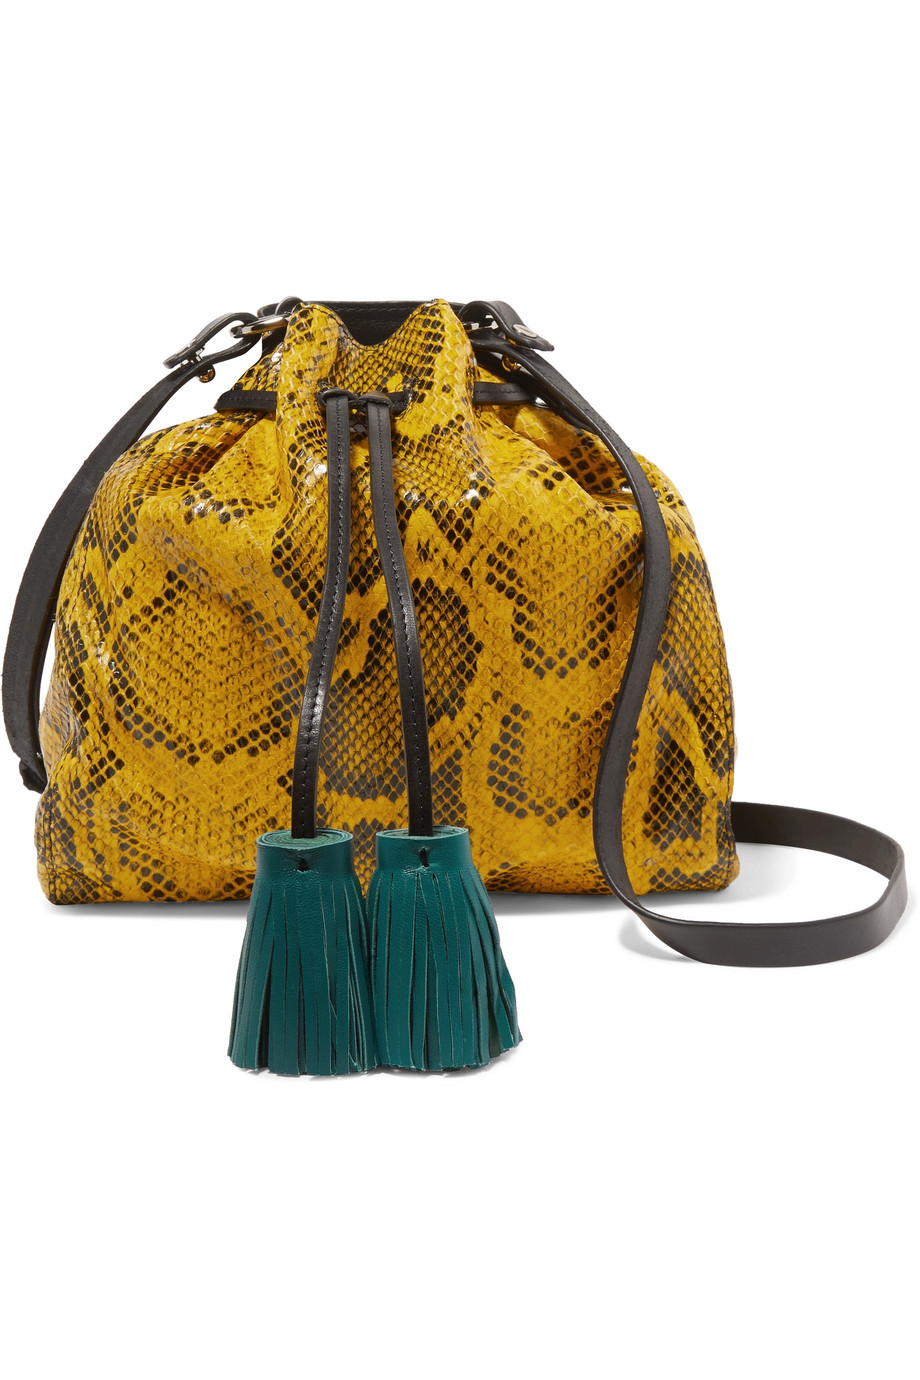 isabel marant beeka leather shoulder bag  -- The 'Beeka' bag is one of Isabel Marant's favorite shapes because it's practical yet original. This season it's updated in vibrant yellow snake-effect leather with contrasting smooth black trims and teal tassels. The interior has enough room for your cell phone, cardholder and keys.